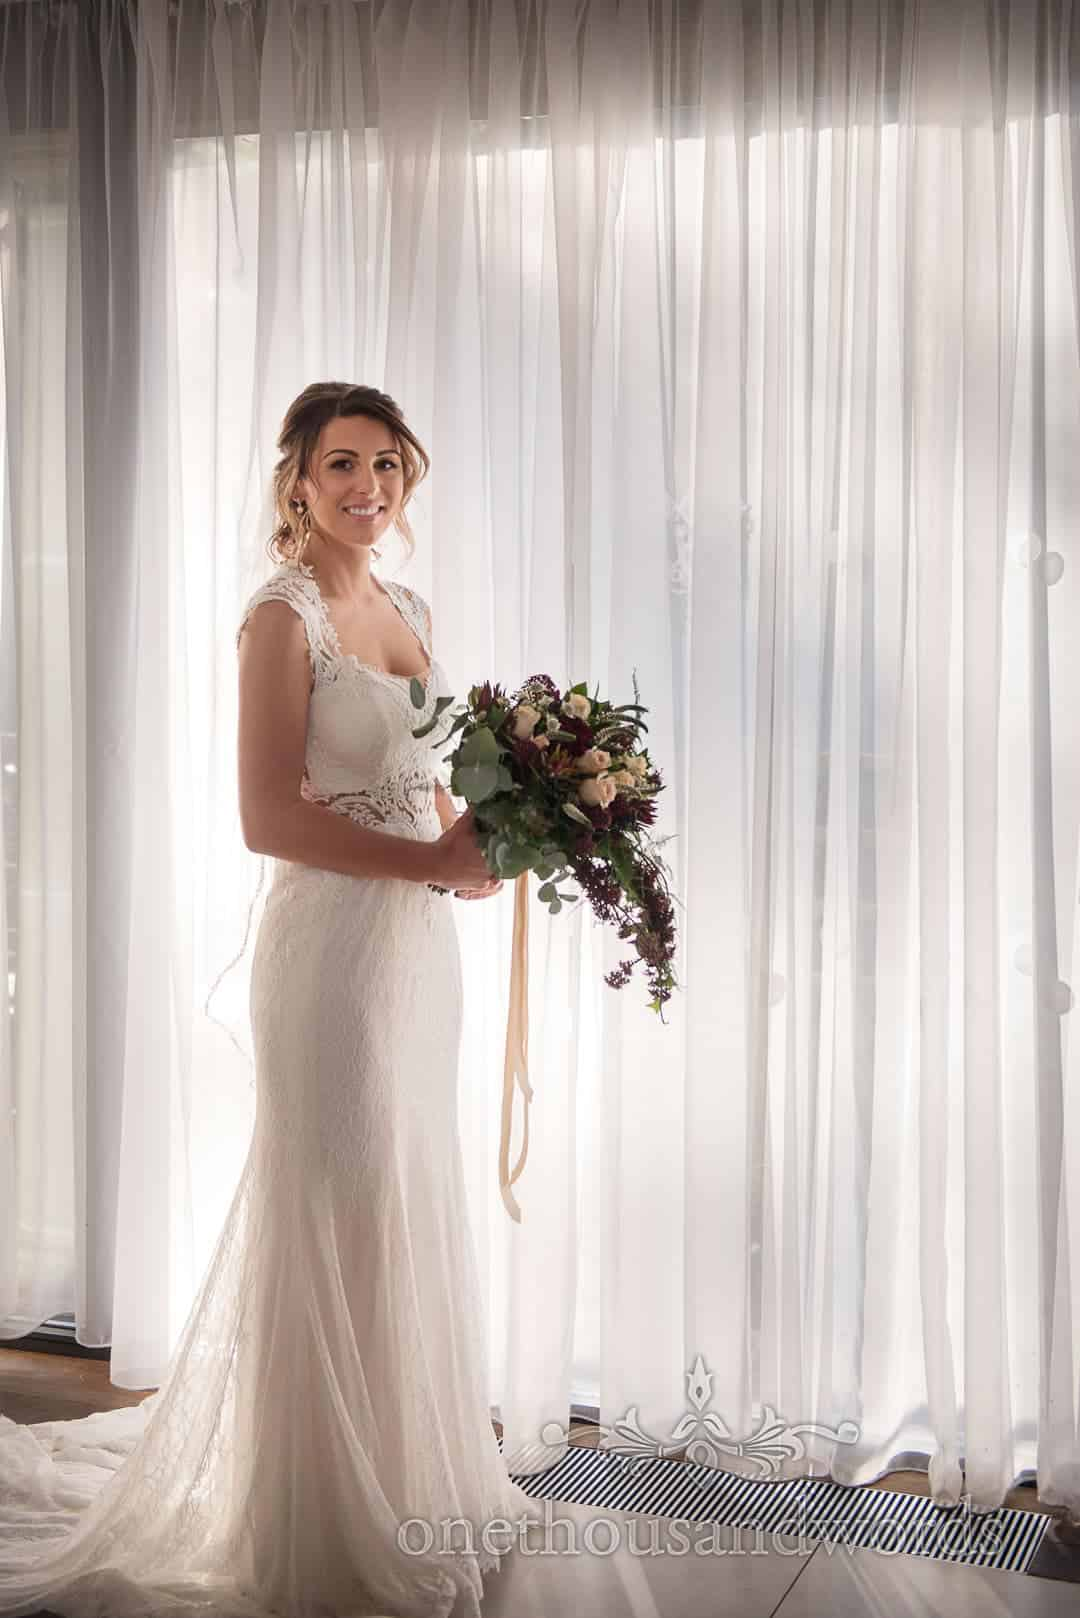 Bride with bouquet before heading to ceremony at Italian Villa wedding photos